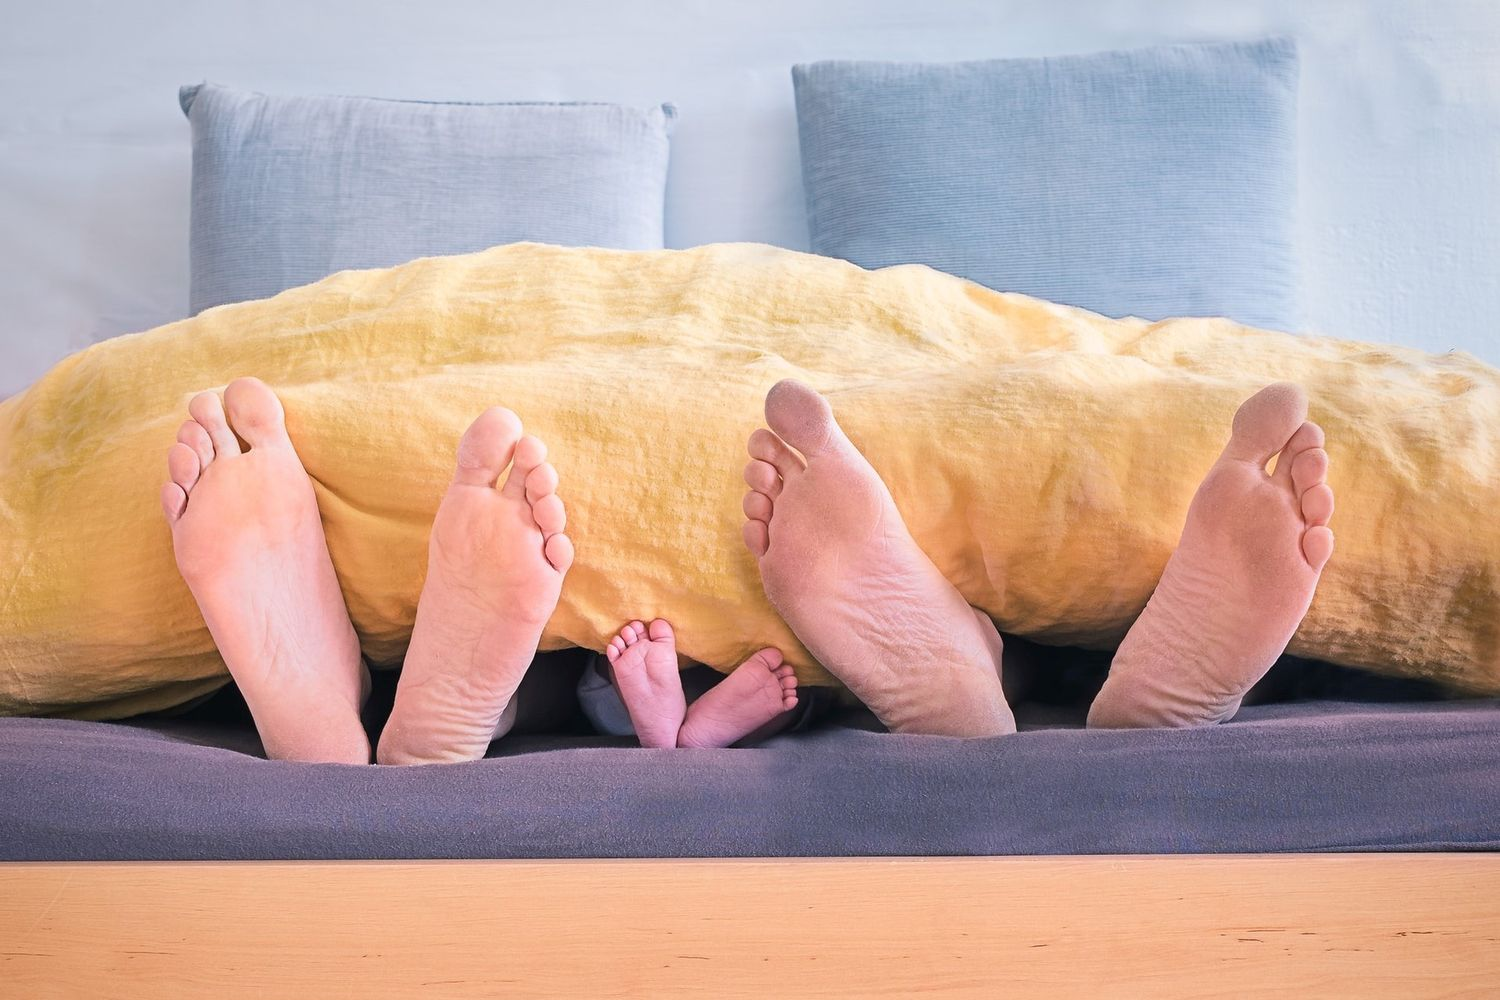 feet of a family under the blanket in a bed participating in autoohm without lifting a finger